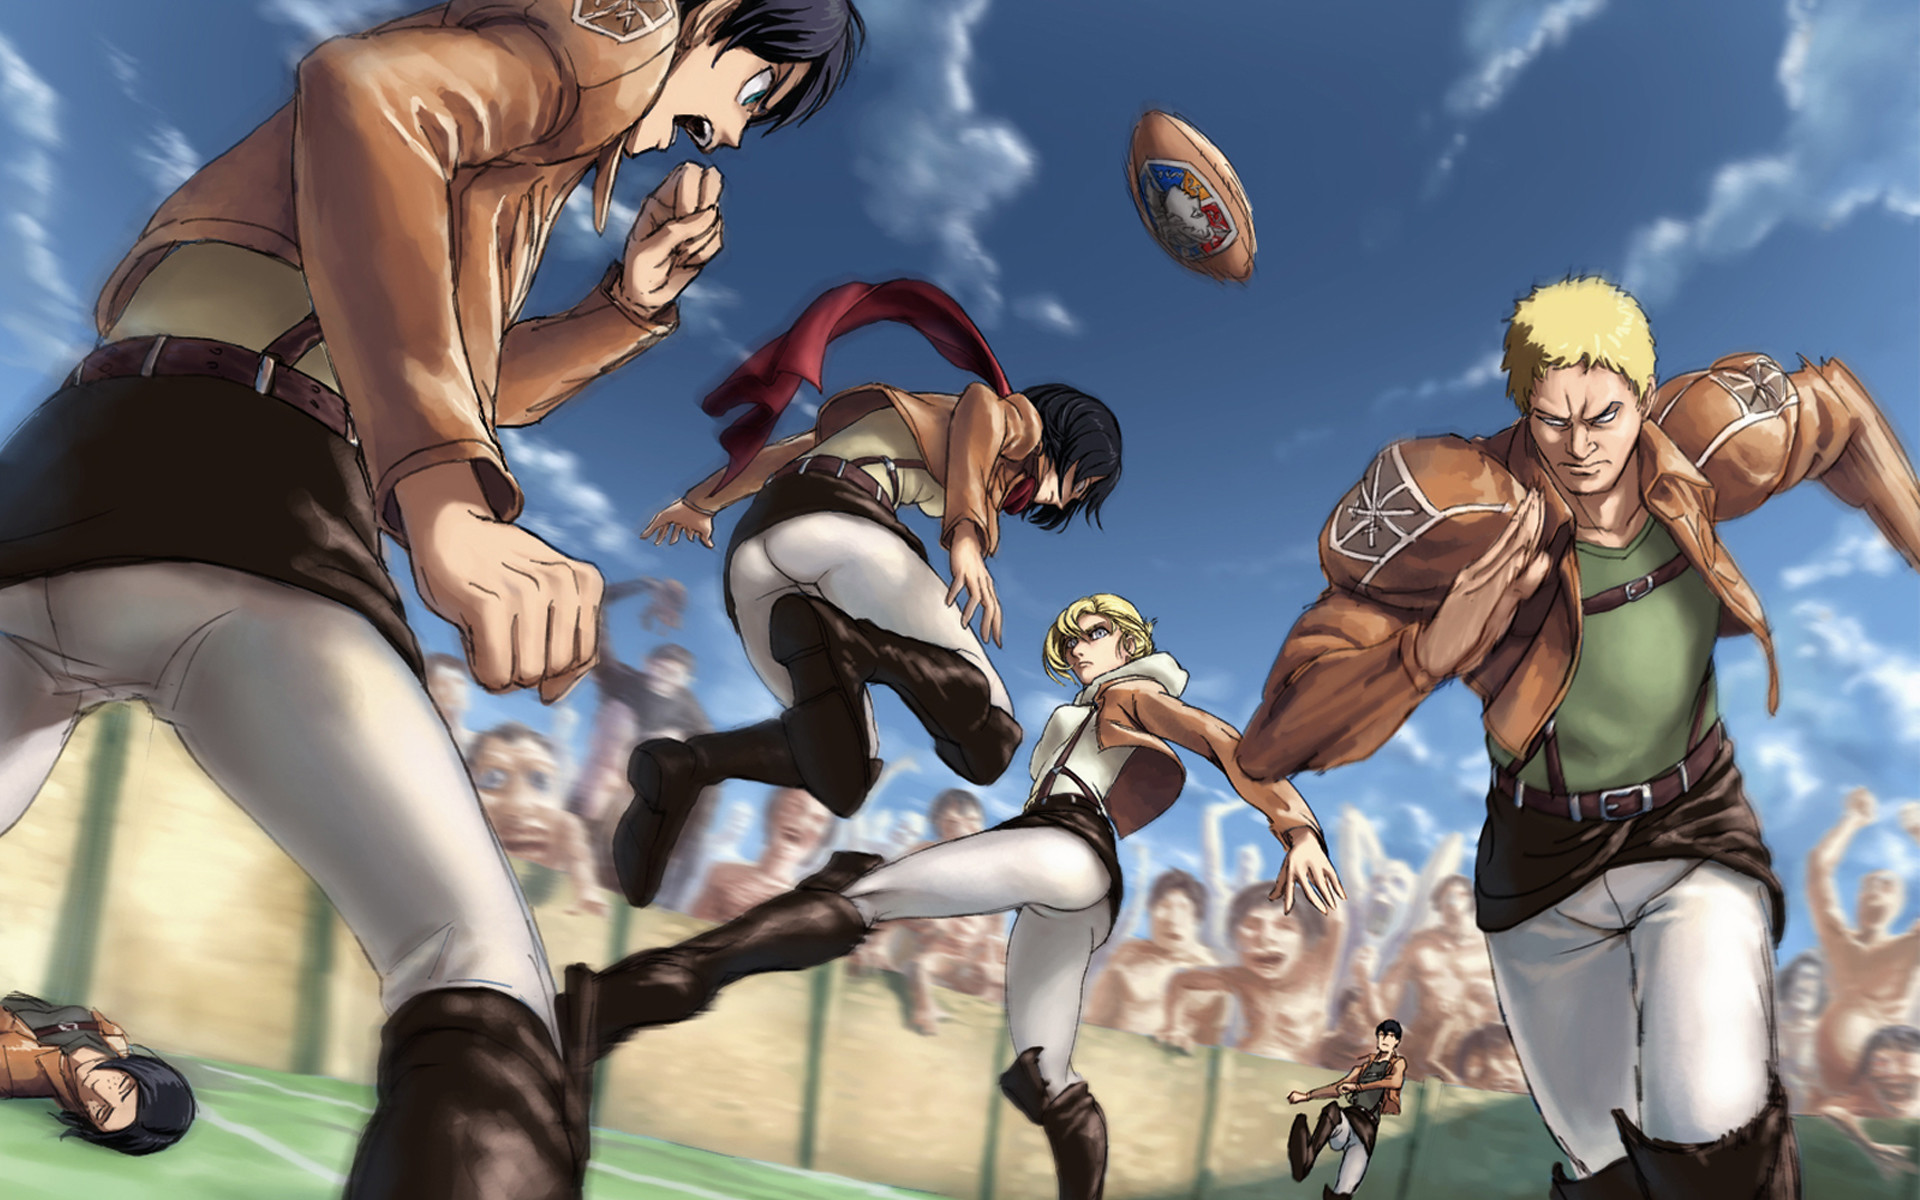 1920x1200 attack on titan / shingeki no kyojin anime hd wallpaper , image